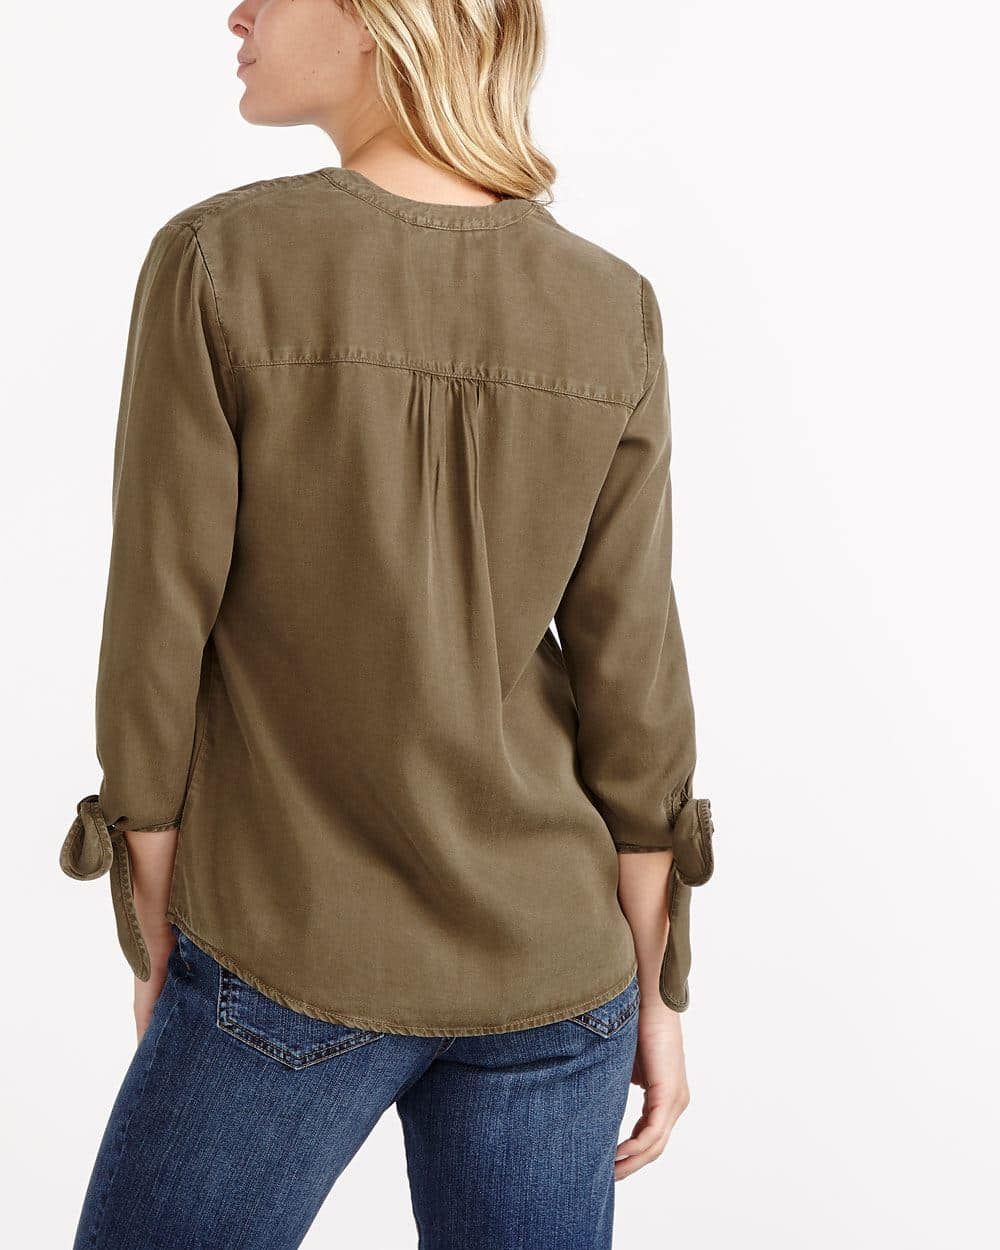 Knotted Sleeve Shirt